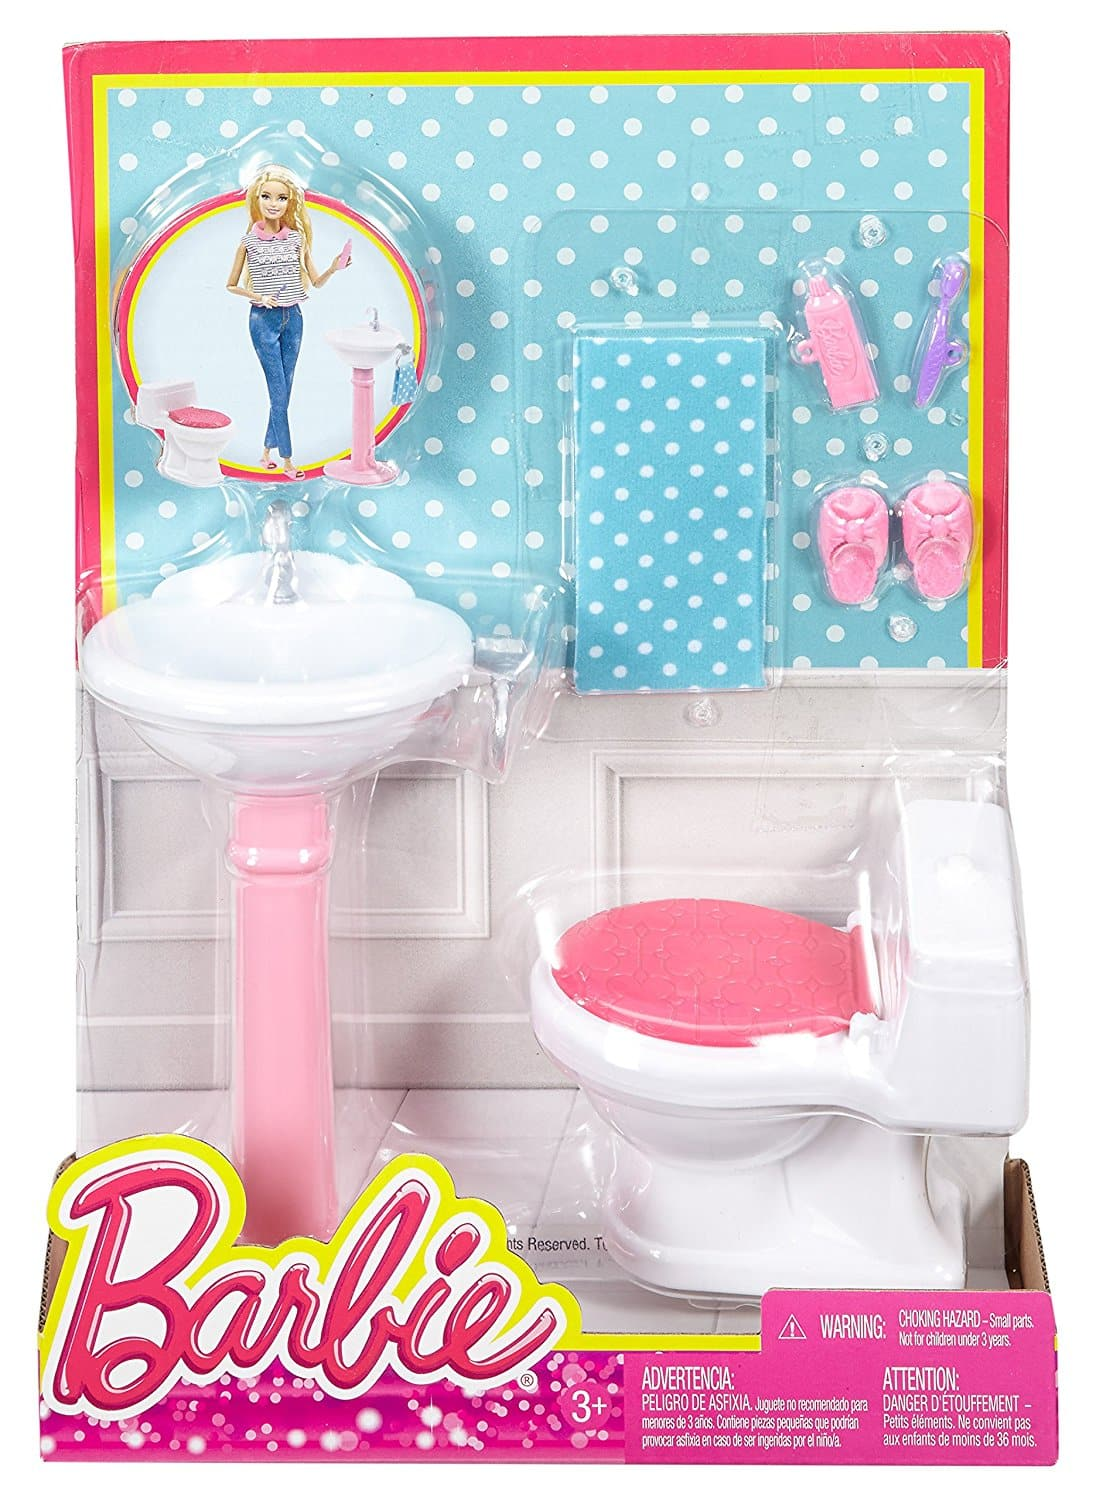 Debt Collection Agency >> Barbie Dream Bathroom Playset - Barbie Collectibles